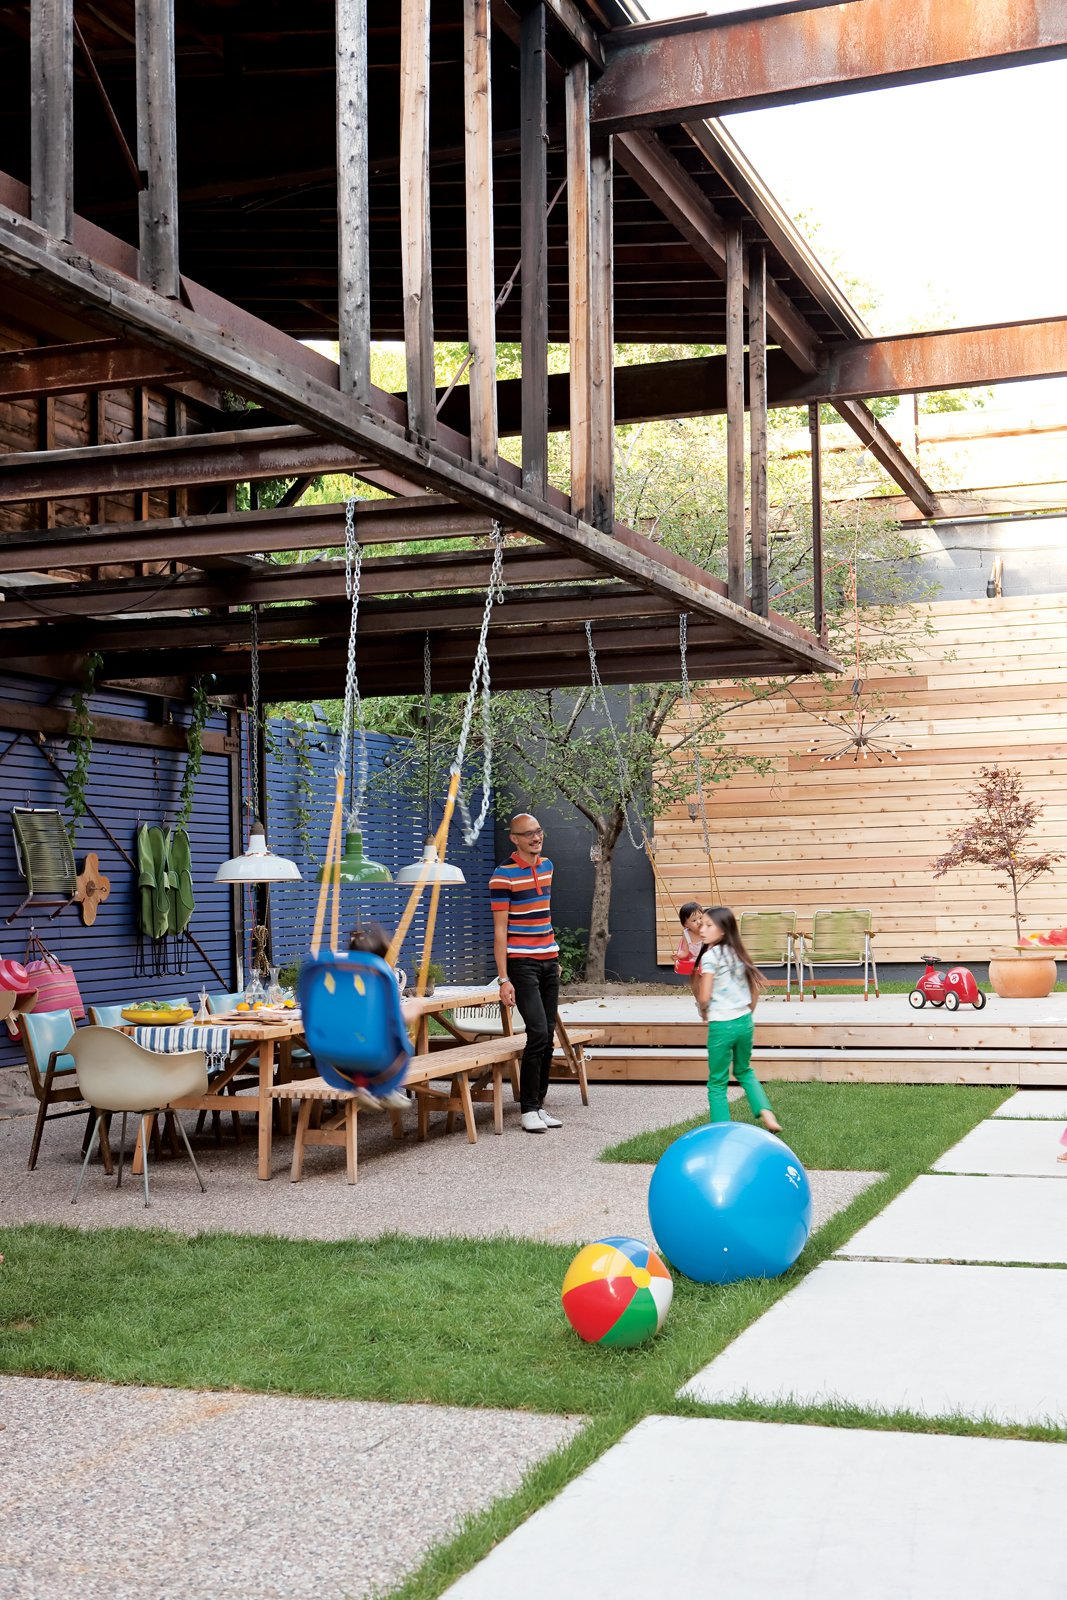 Outdoor and Grass With ingenuity and plenty of elbow grease, architect John Tong turned an old Toronto dairy into the ultimate family clubhouse. Photo by Christopher Wahl.  Photos from Play's the Thing